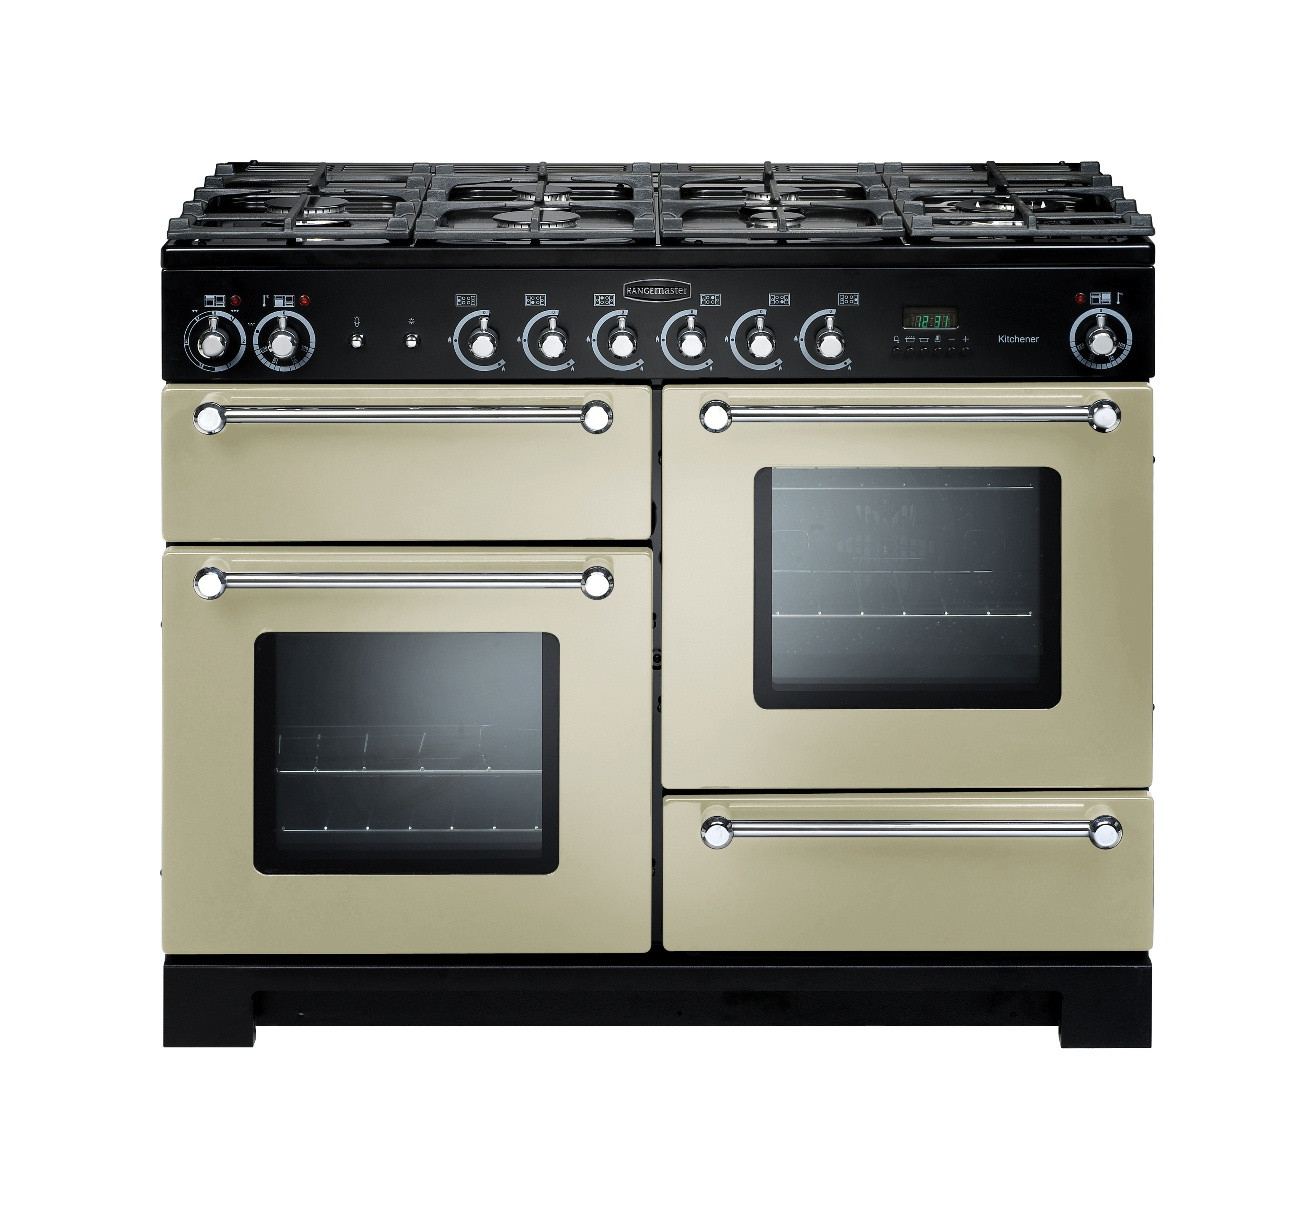 Rangemaster Kitchener 110 Dual Fuel Cream Range Cooker 76770